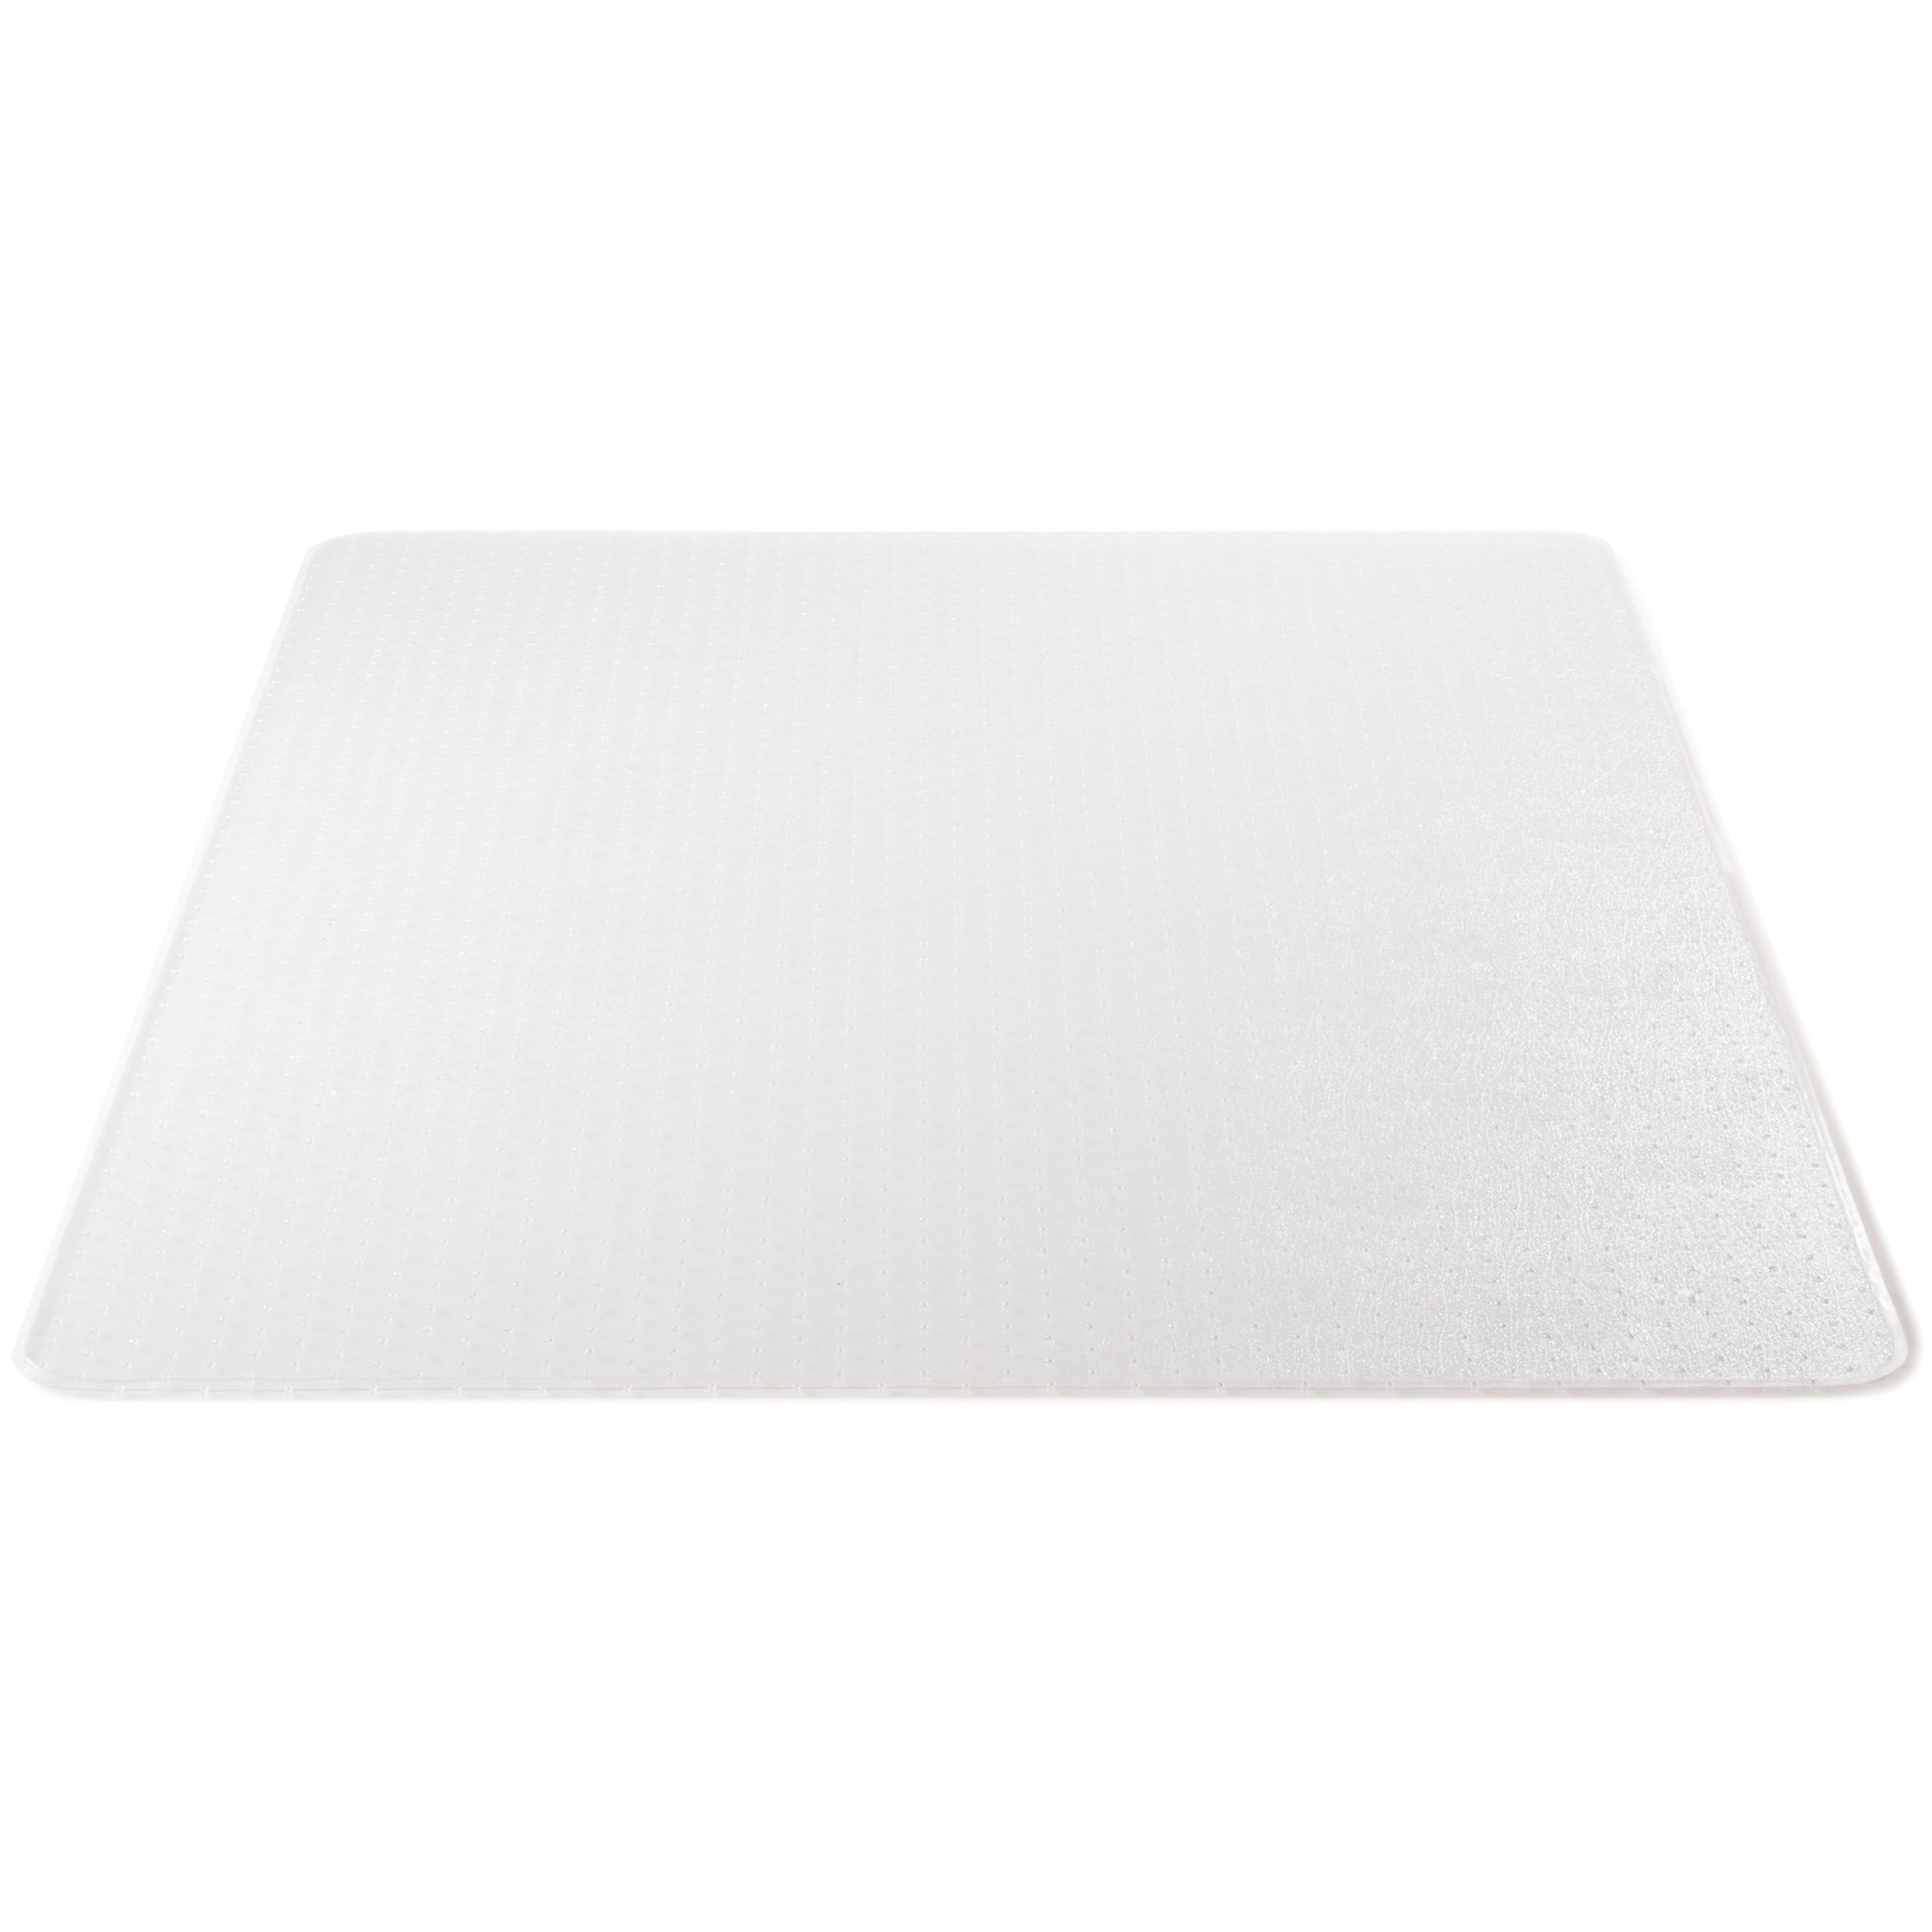 Deflecto DuraMat Clear Chair Mat, Low Pile Carpet Use, Rectangle, Beveled Edge, 46 x 60 Inches (CM13443FCOM)